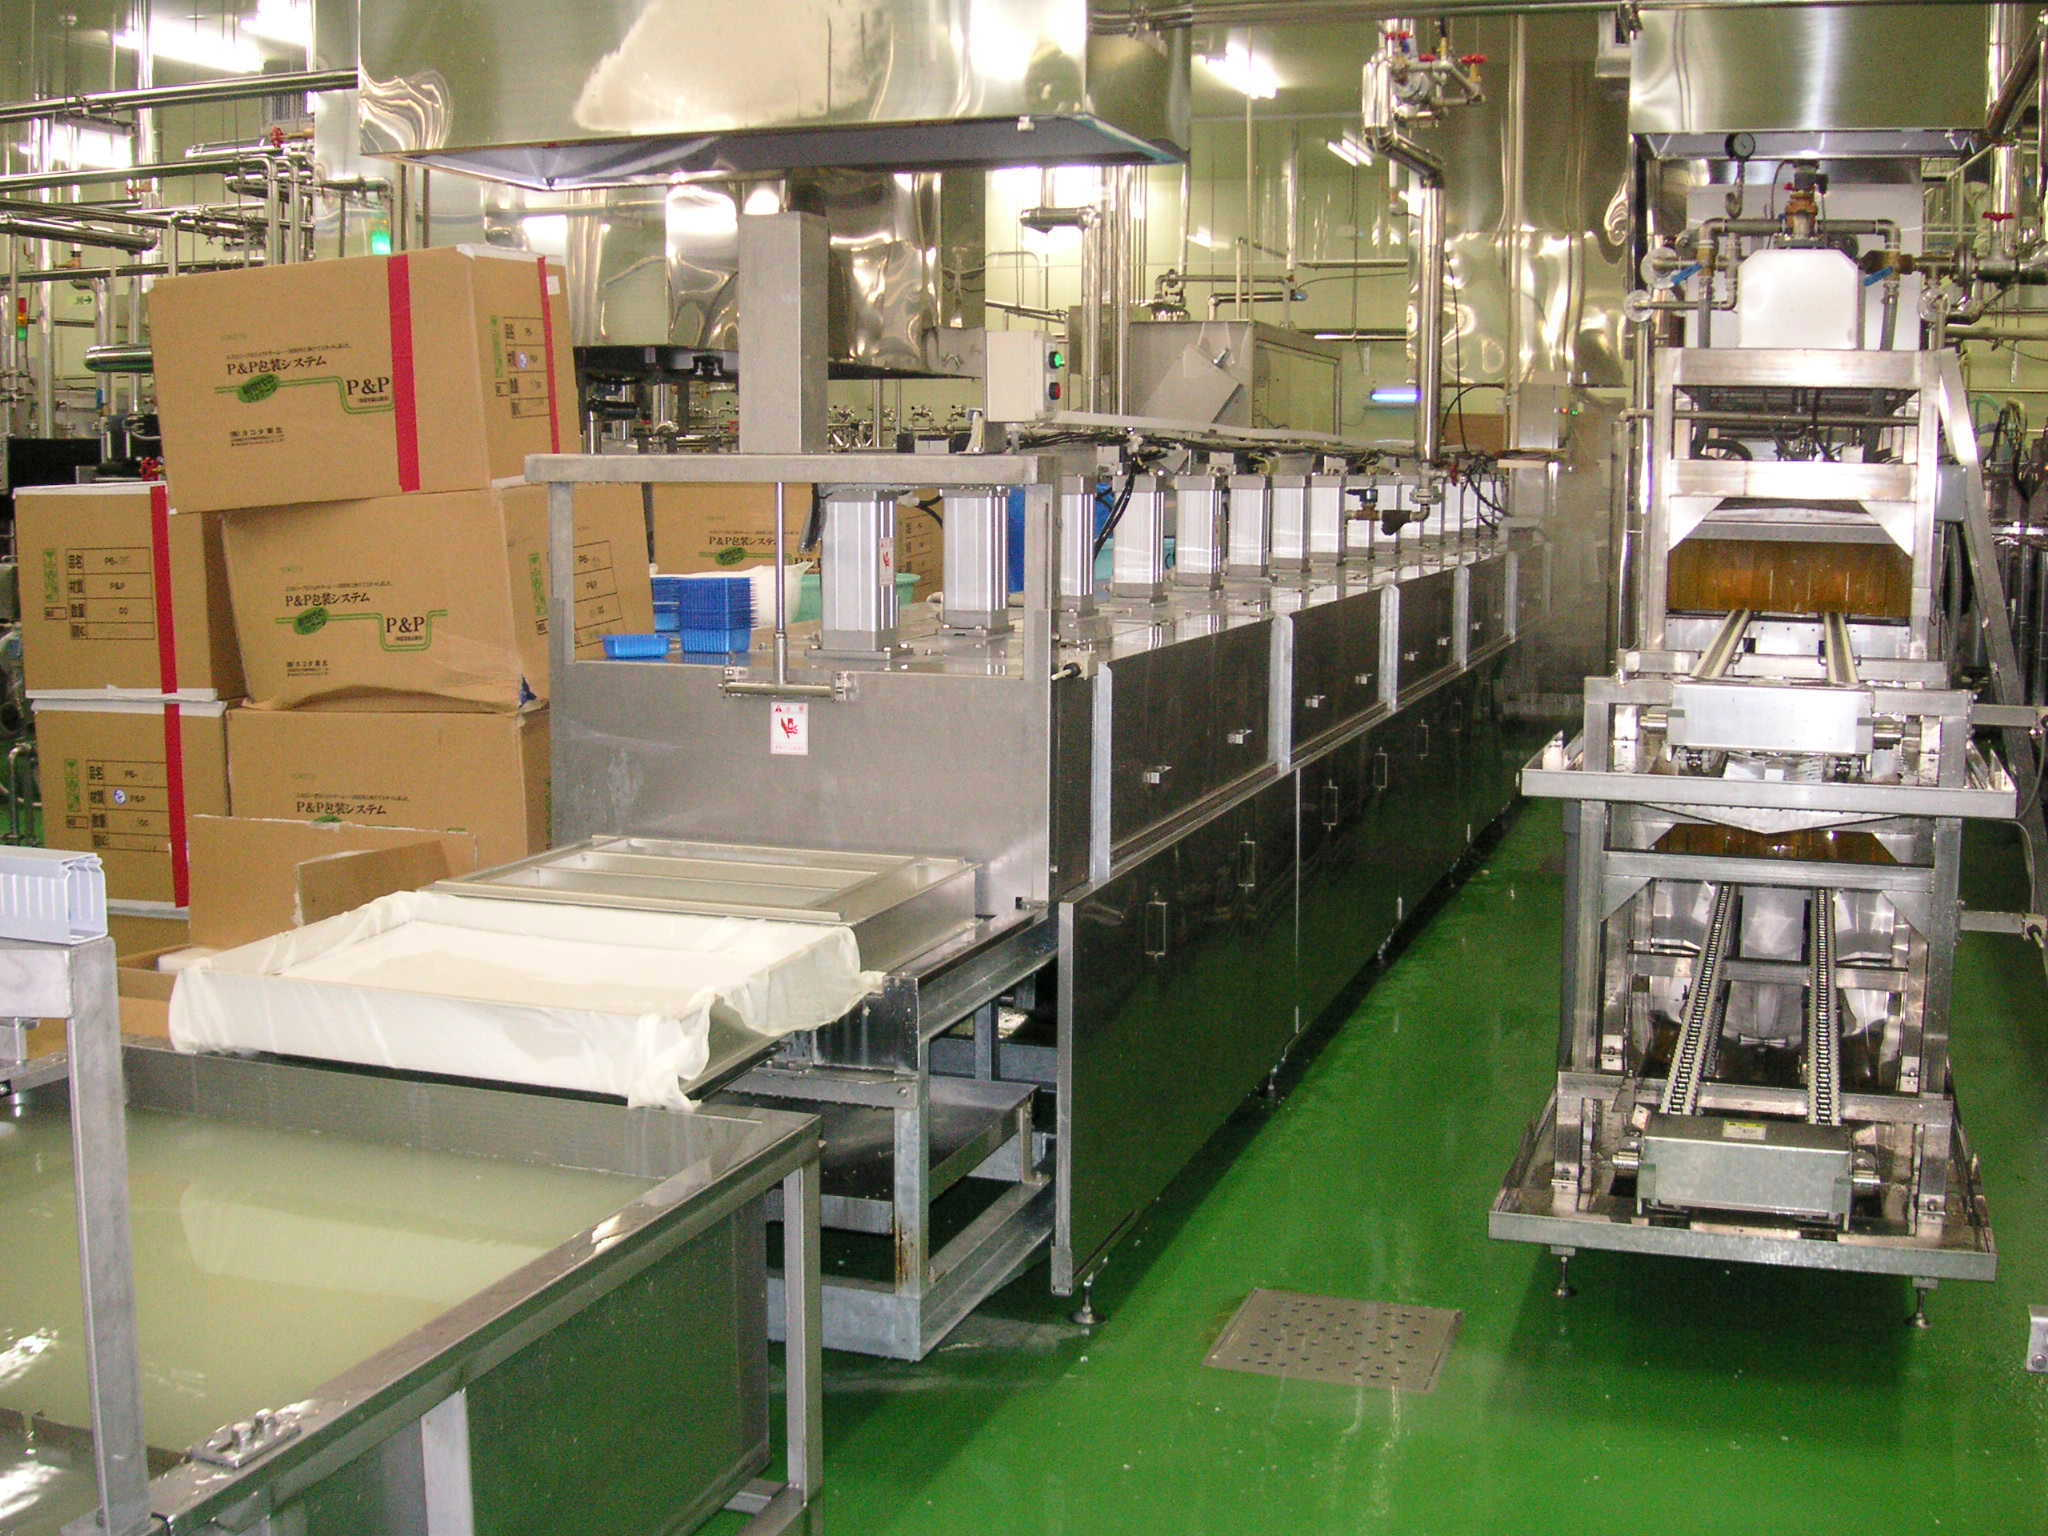 Cleaning device for pressing type molding boxes returning image.